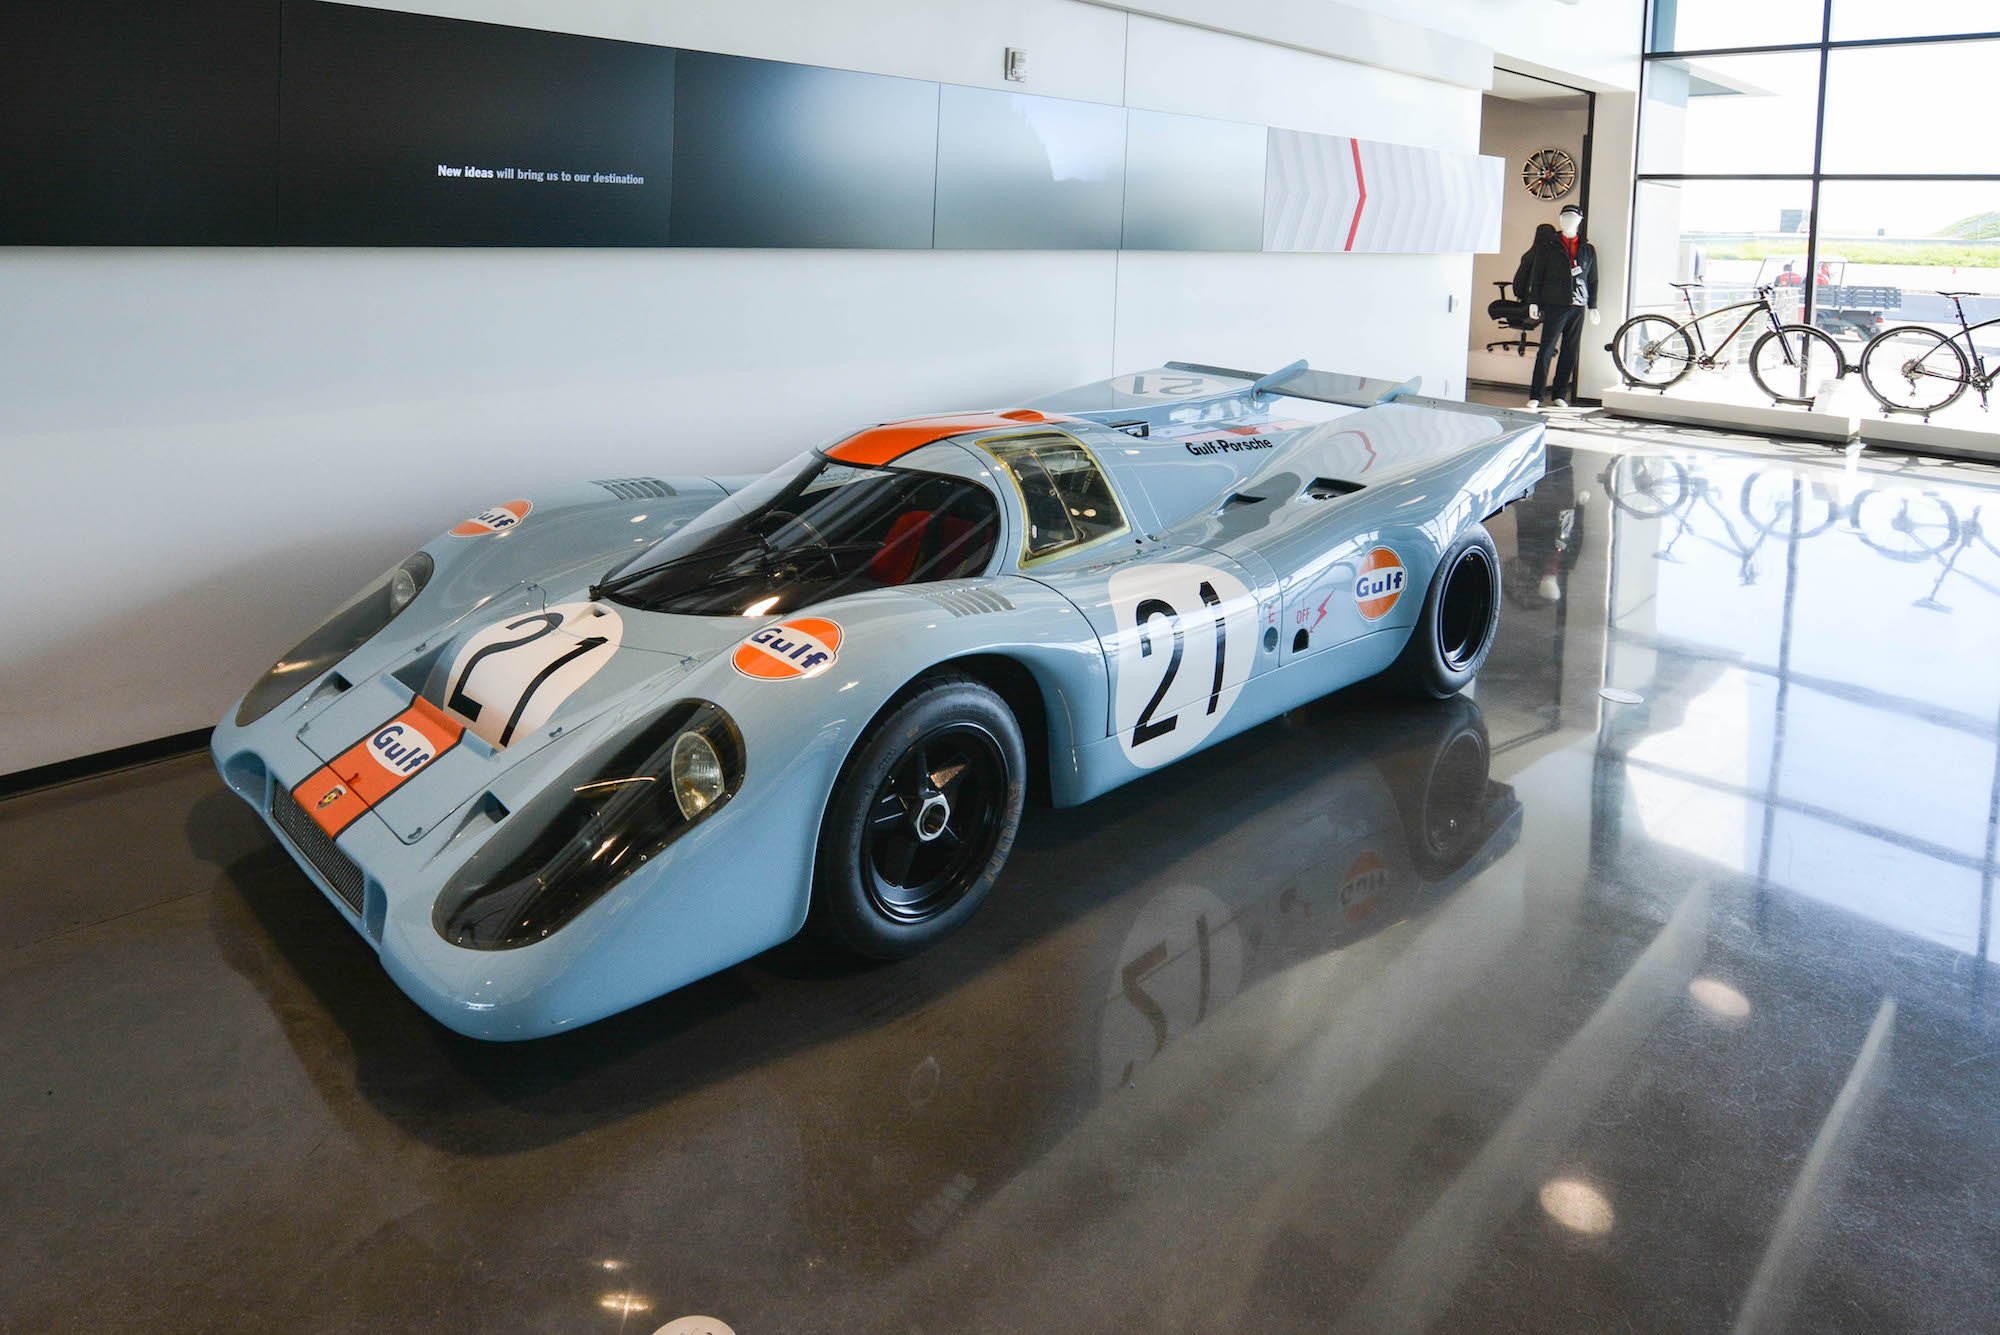 Porsche s Hidden Restaurant Is LA s Best New Secret Eater LA